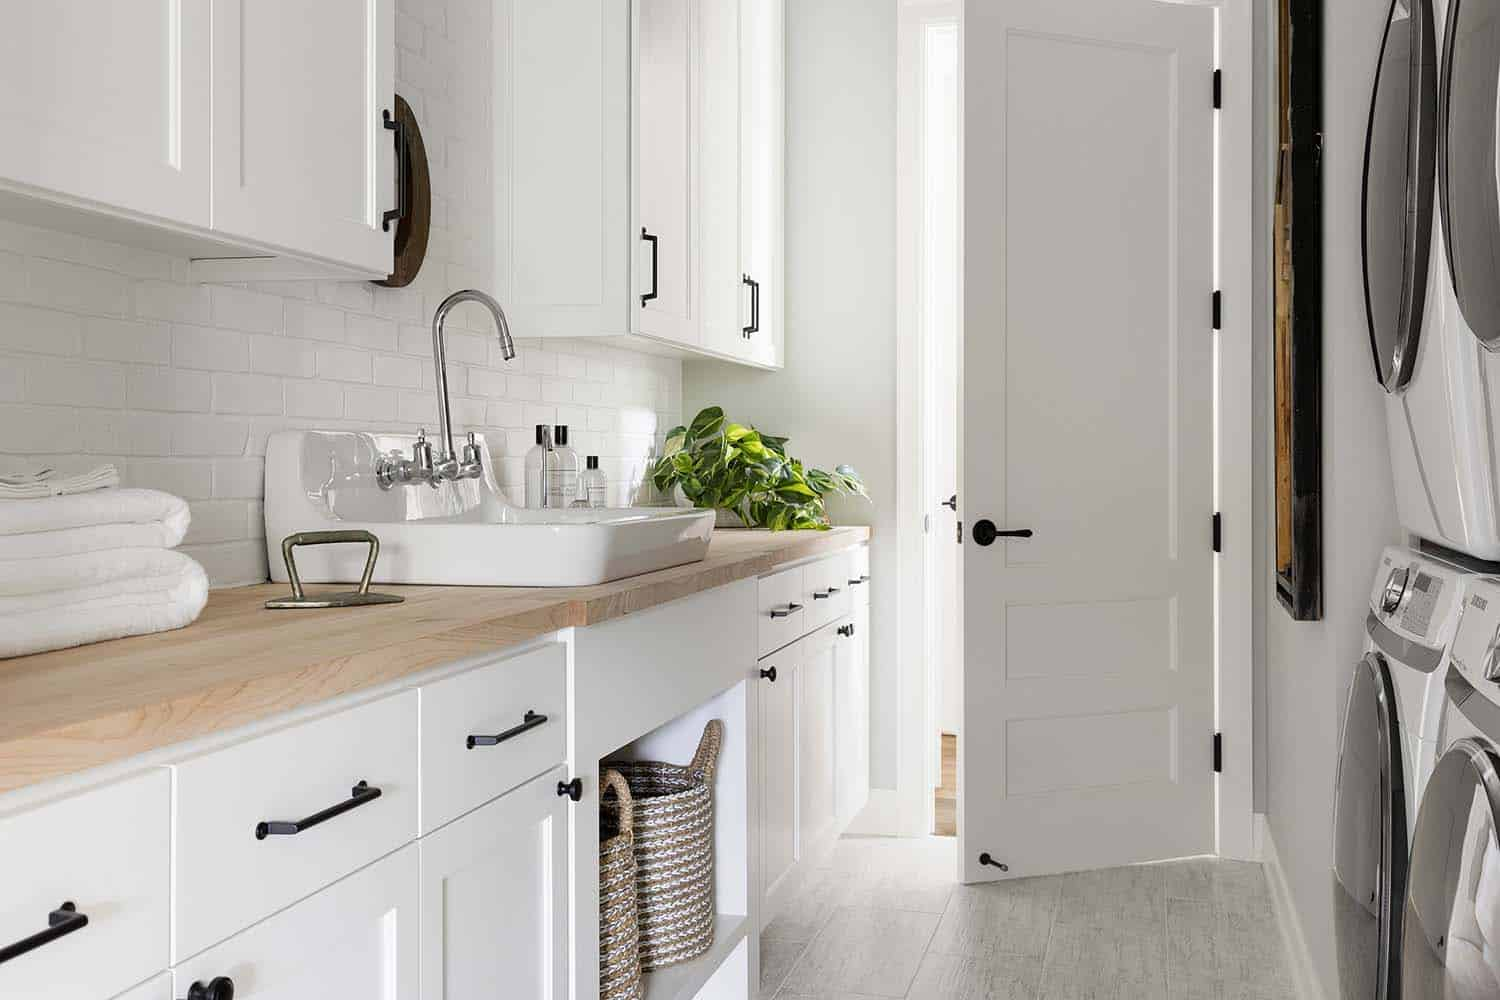 1568121741 191 25 inspiring mudroom ideas for every home and style - 25 Inspiring Mudroom Ideas For Every Home And Style